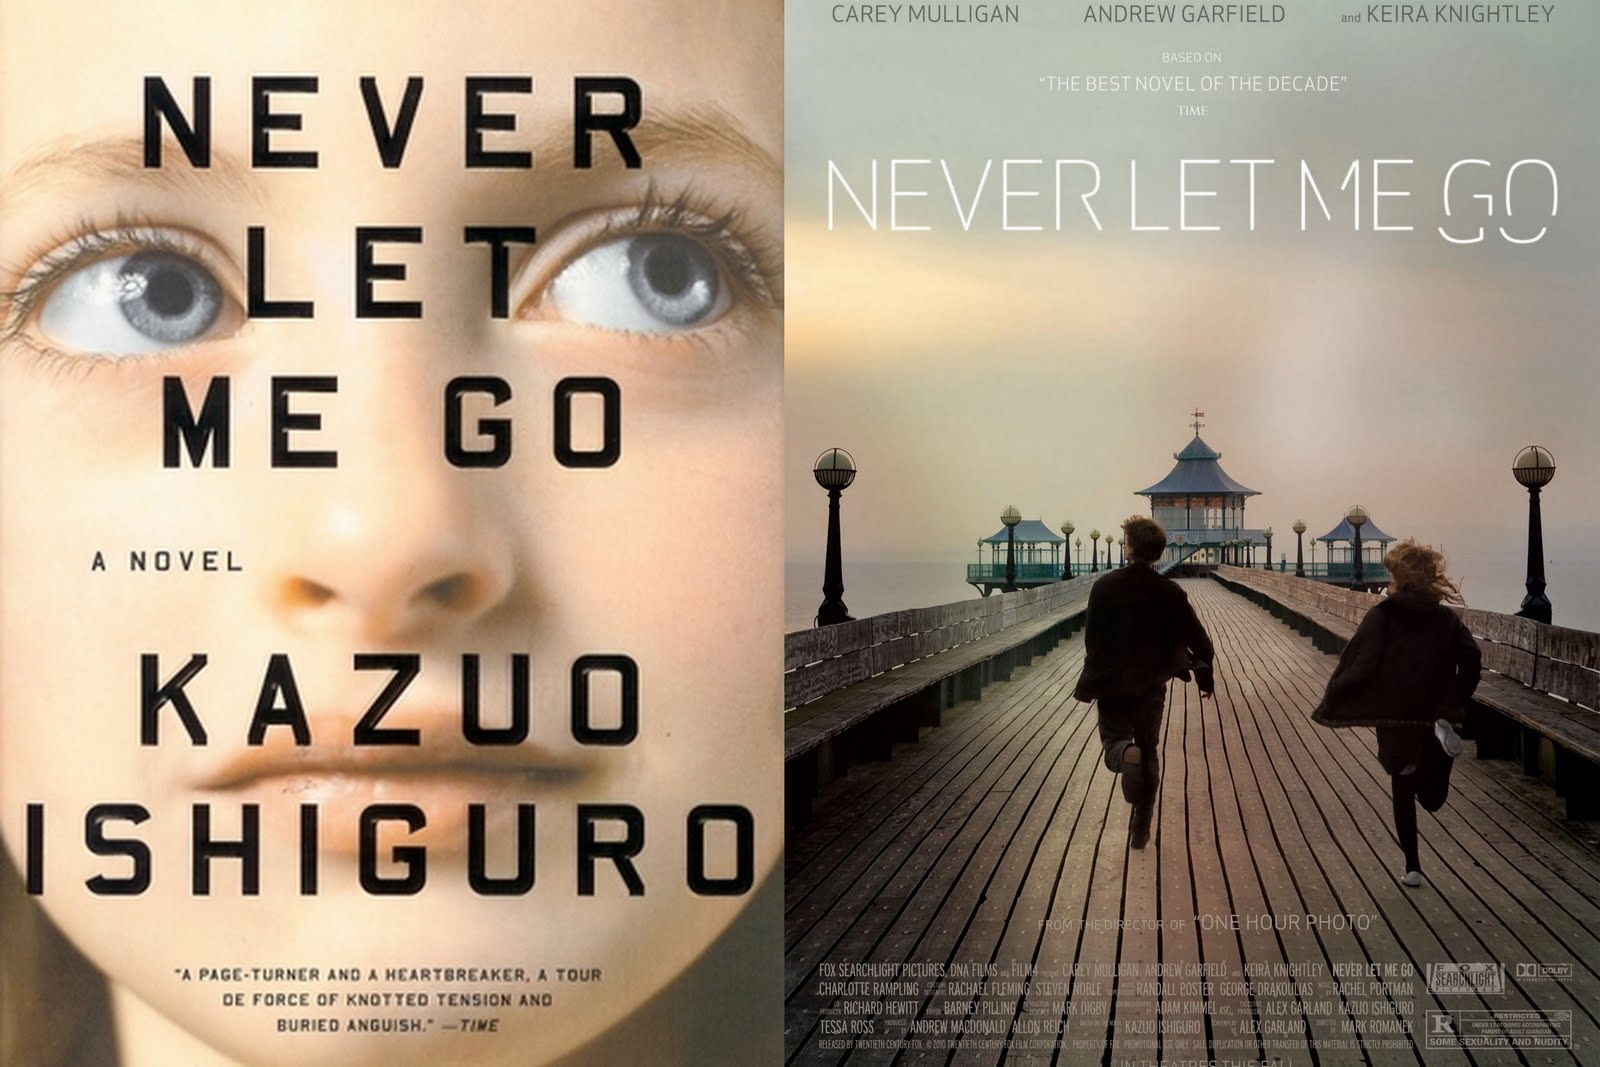 psychological critique of never let me Ishiguro's novel never let me go, which gradually reveals a coun- terfactual  to  be human emerges through a critique of romantic-inspired as- sumptions   modern psychological accounts afford empathy a significant place.